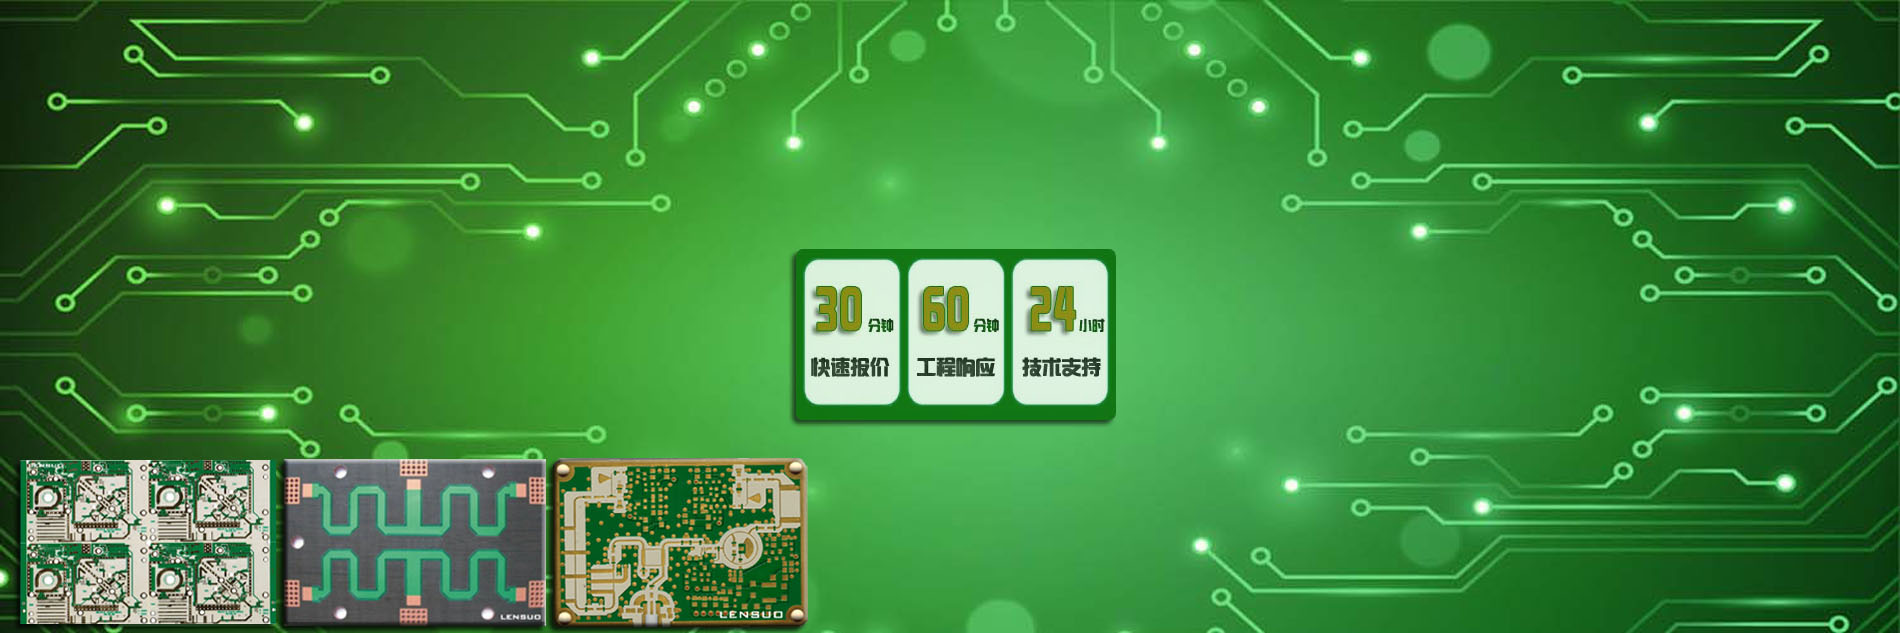 Pcb Manufacture Lensuo Technology Development Coltd Printed Circuit Board Manufacturer Buried Blind Via For Sale Your Products To Market Faster The Most Trusted Supplier Of